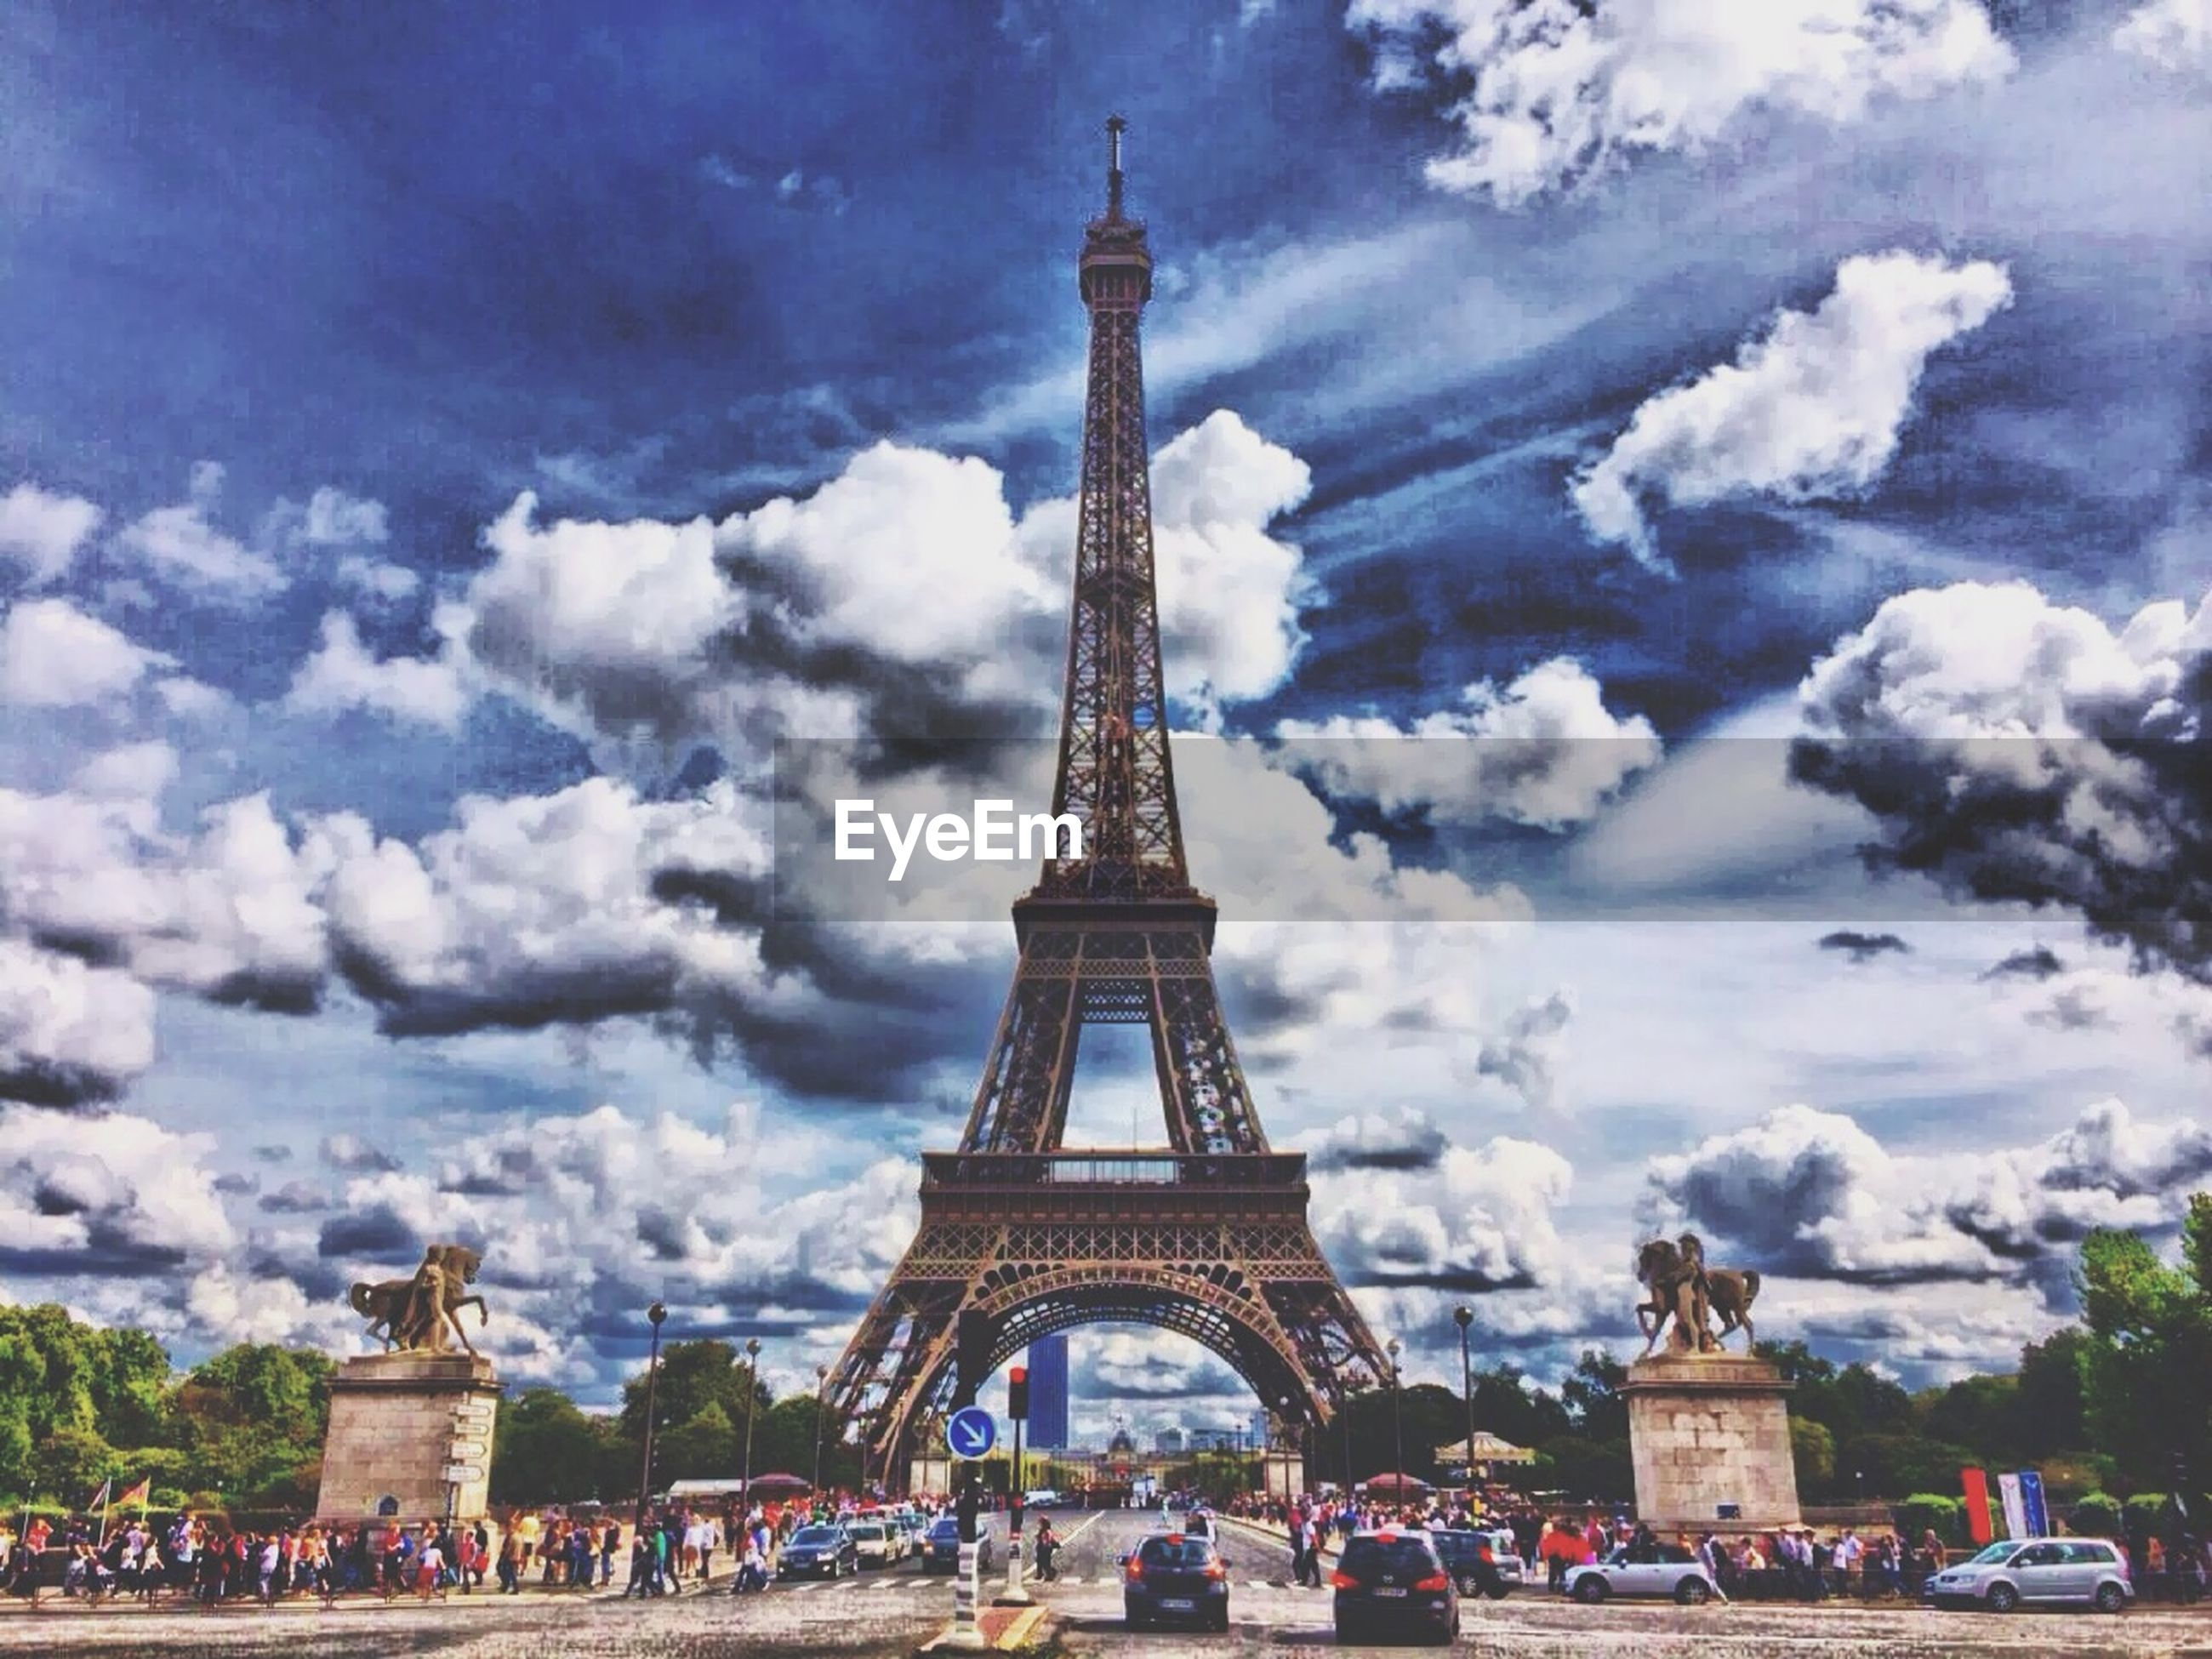 architecture, famous place, sky, built structure, tourism, cloud - sky, travel destinations, international landmark, travel, large group of people, history, tourist, cloudy, tower, person, capital cities, building exterior, tree, lifestyles